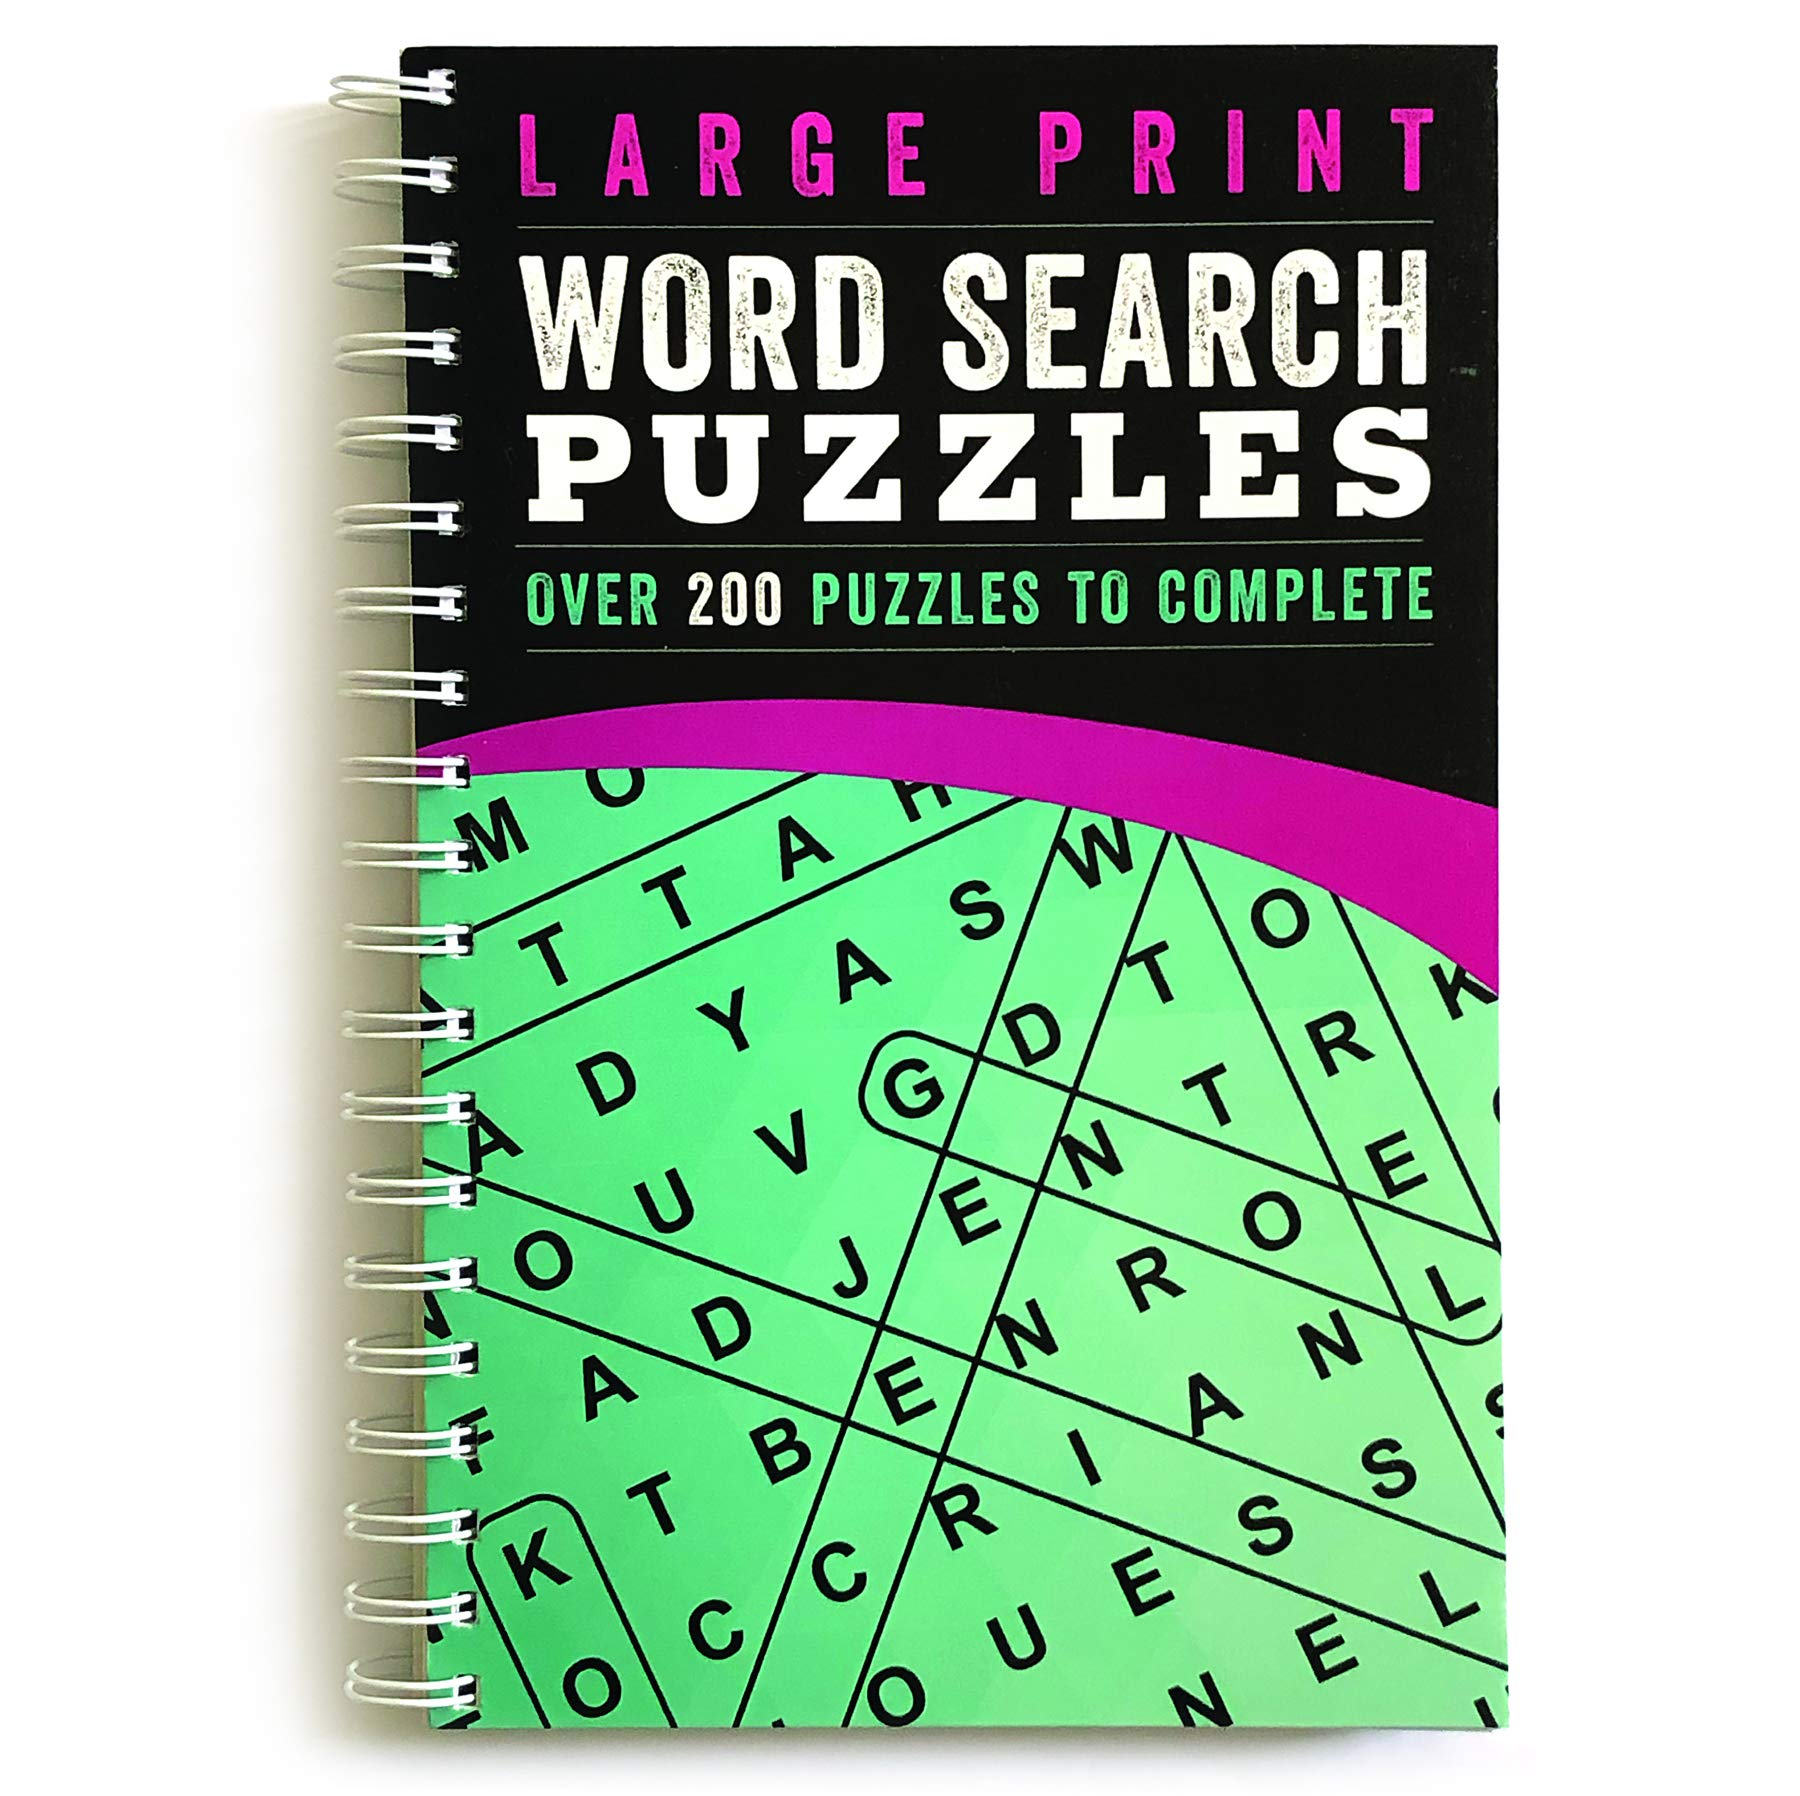 Large Print Word Search Puzzles product image